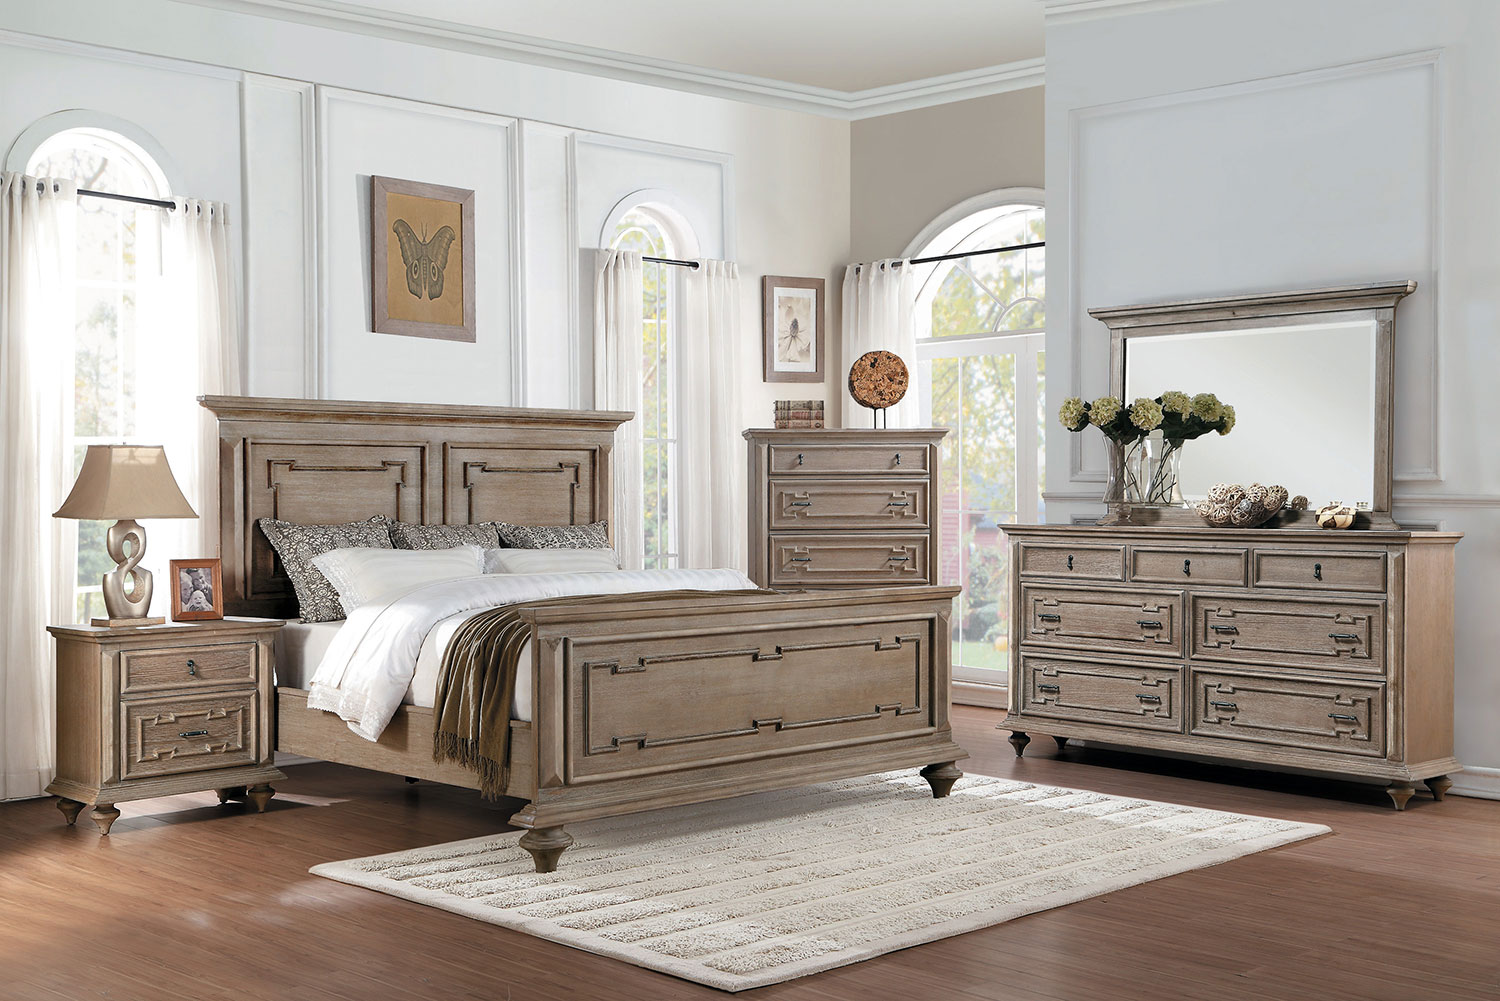 Homelegance Marceline Bedroom Set - Weathered